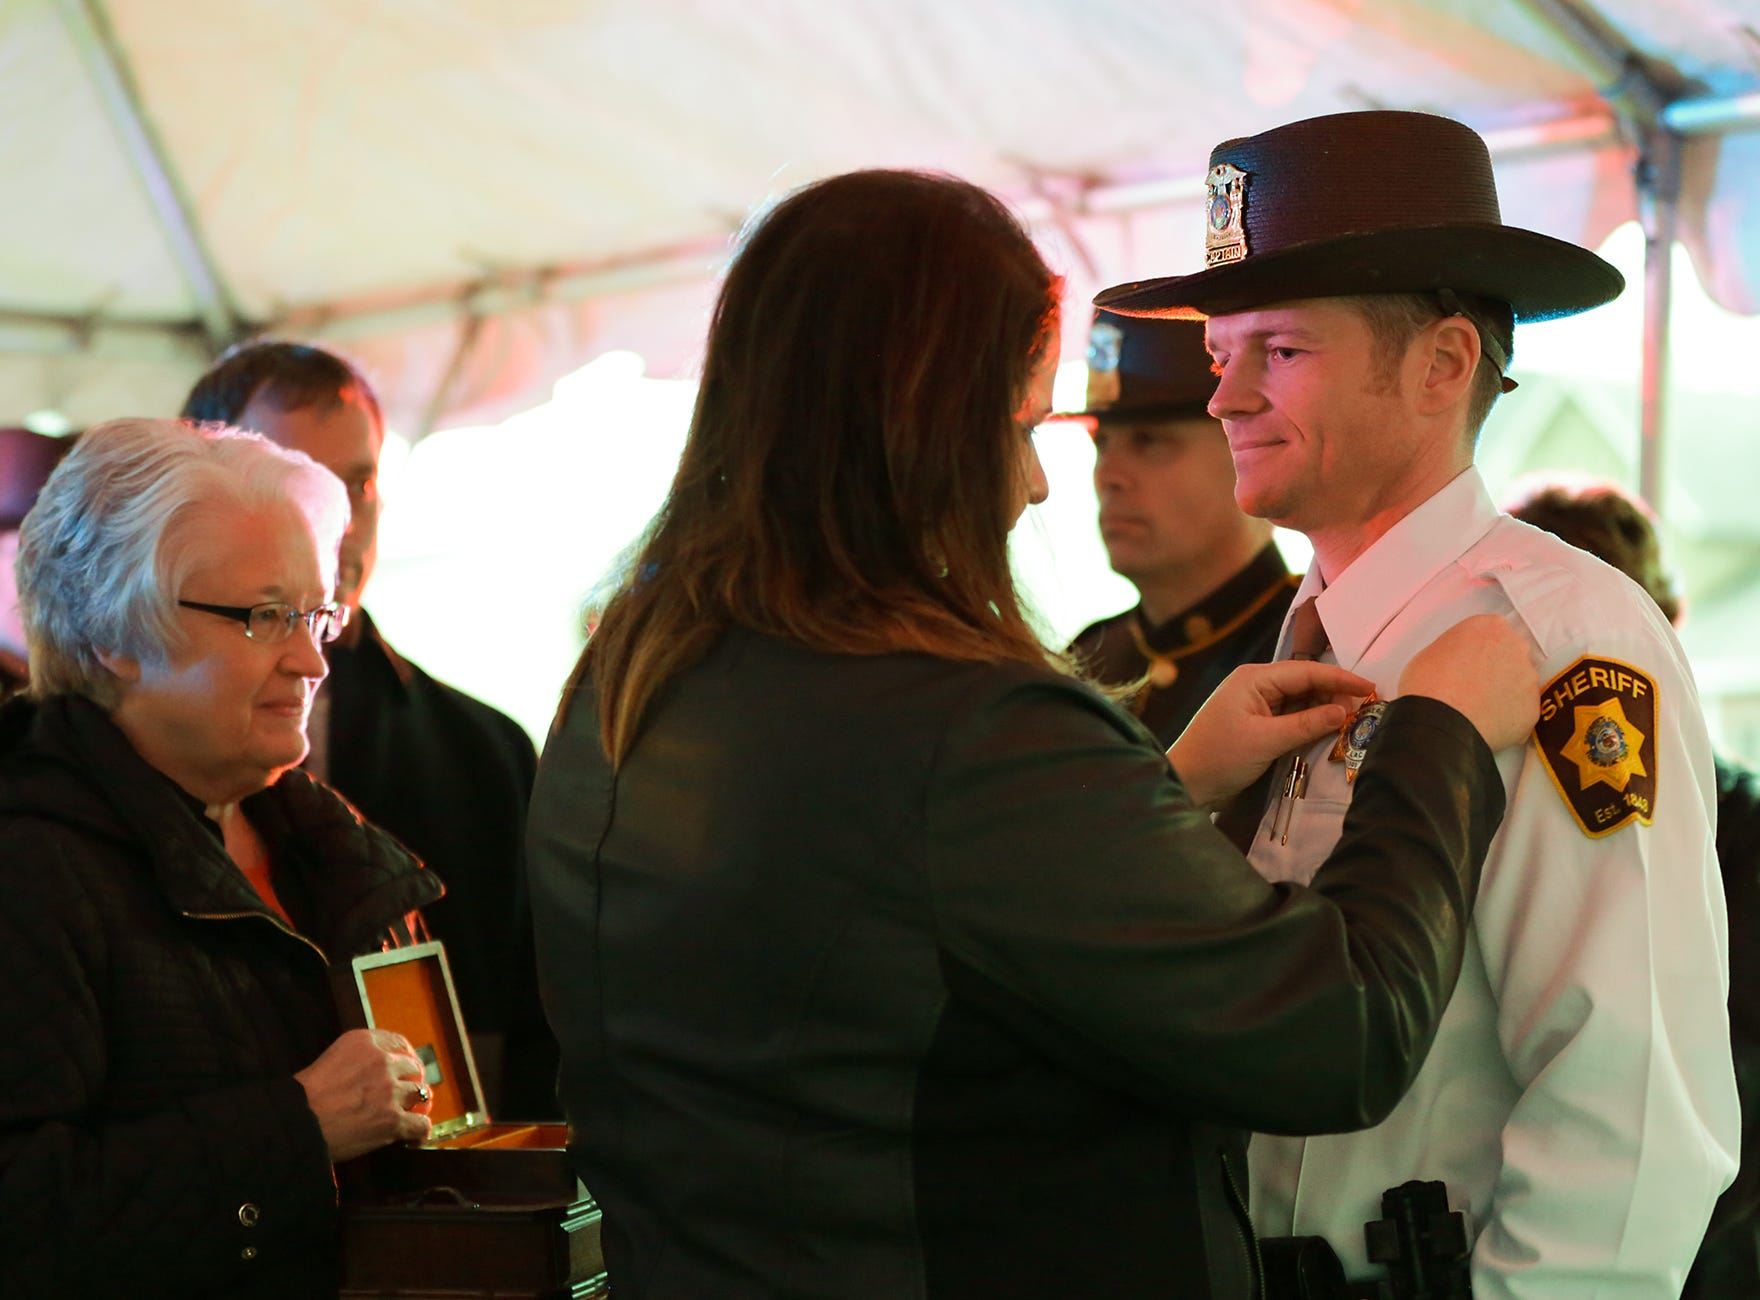 Sara Waldschmidt pins a sheriff's badge on her husband Ryan Waldschmidt Monday, January 7, 2019 outside the Fond du Lac Sheriff's Office after he is sworn in as the new sheriff of Fond du Lac County. Submitted by Roxanne Abler/USA TODAY NETWORK-Wisconsin